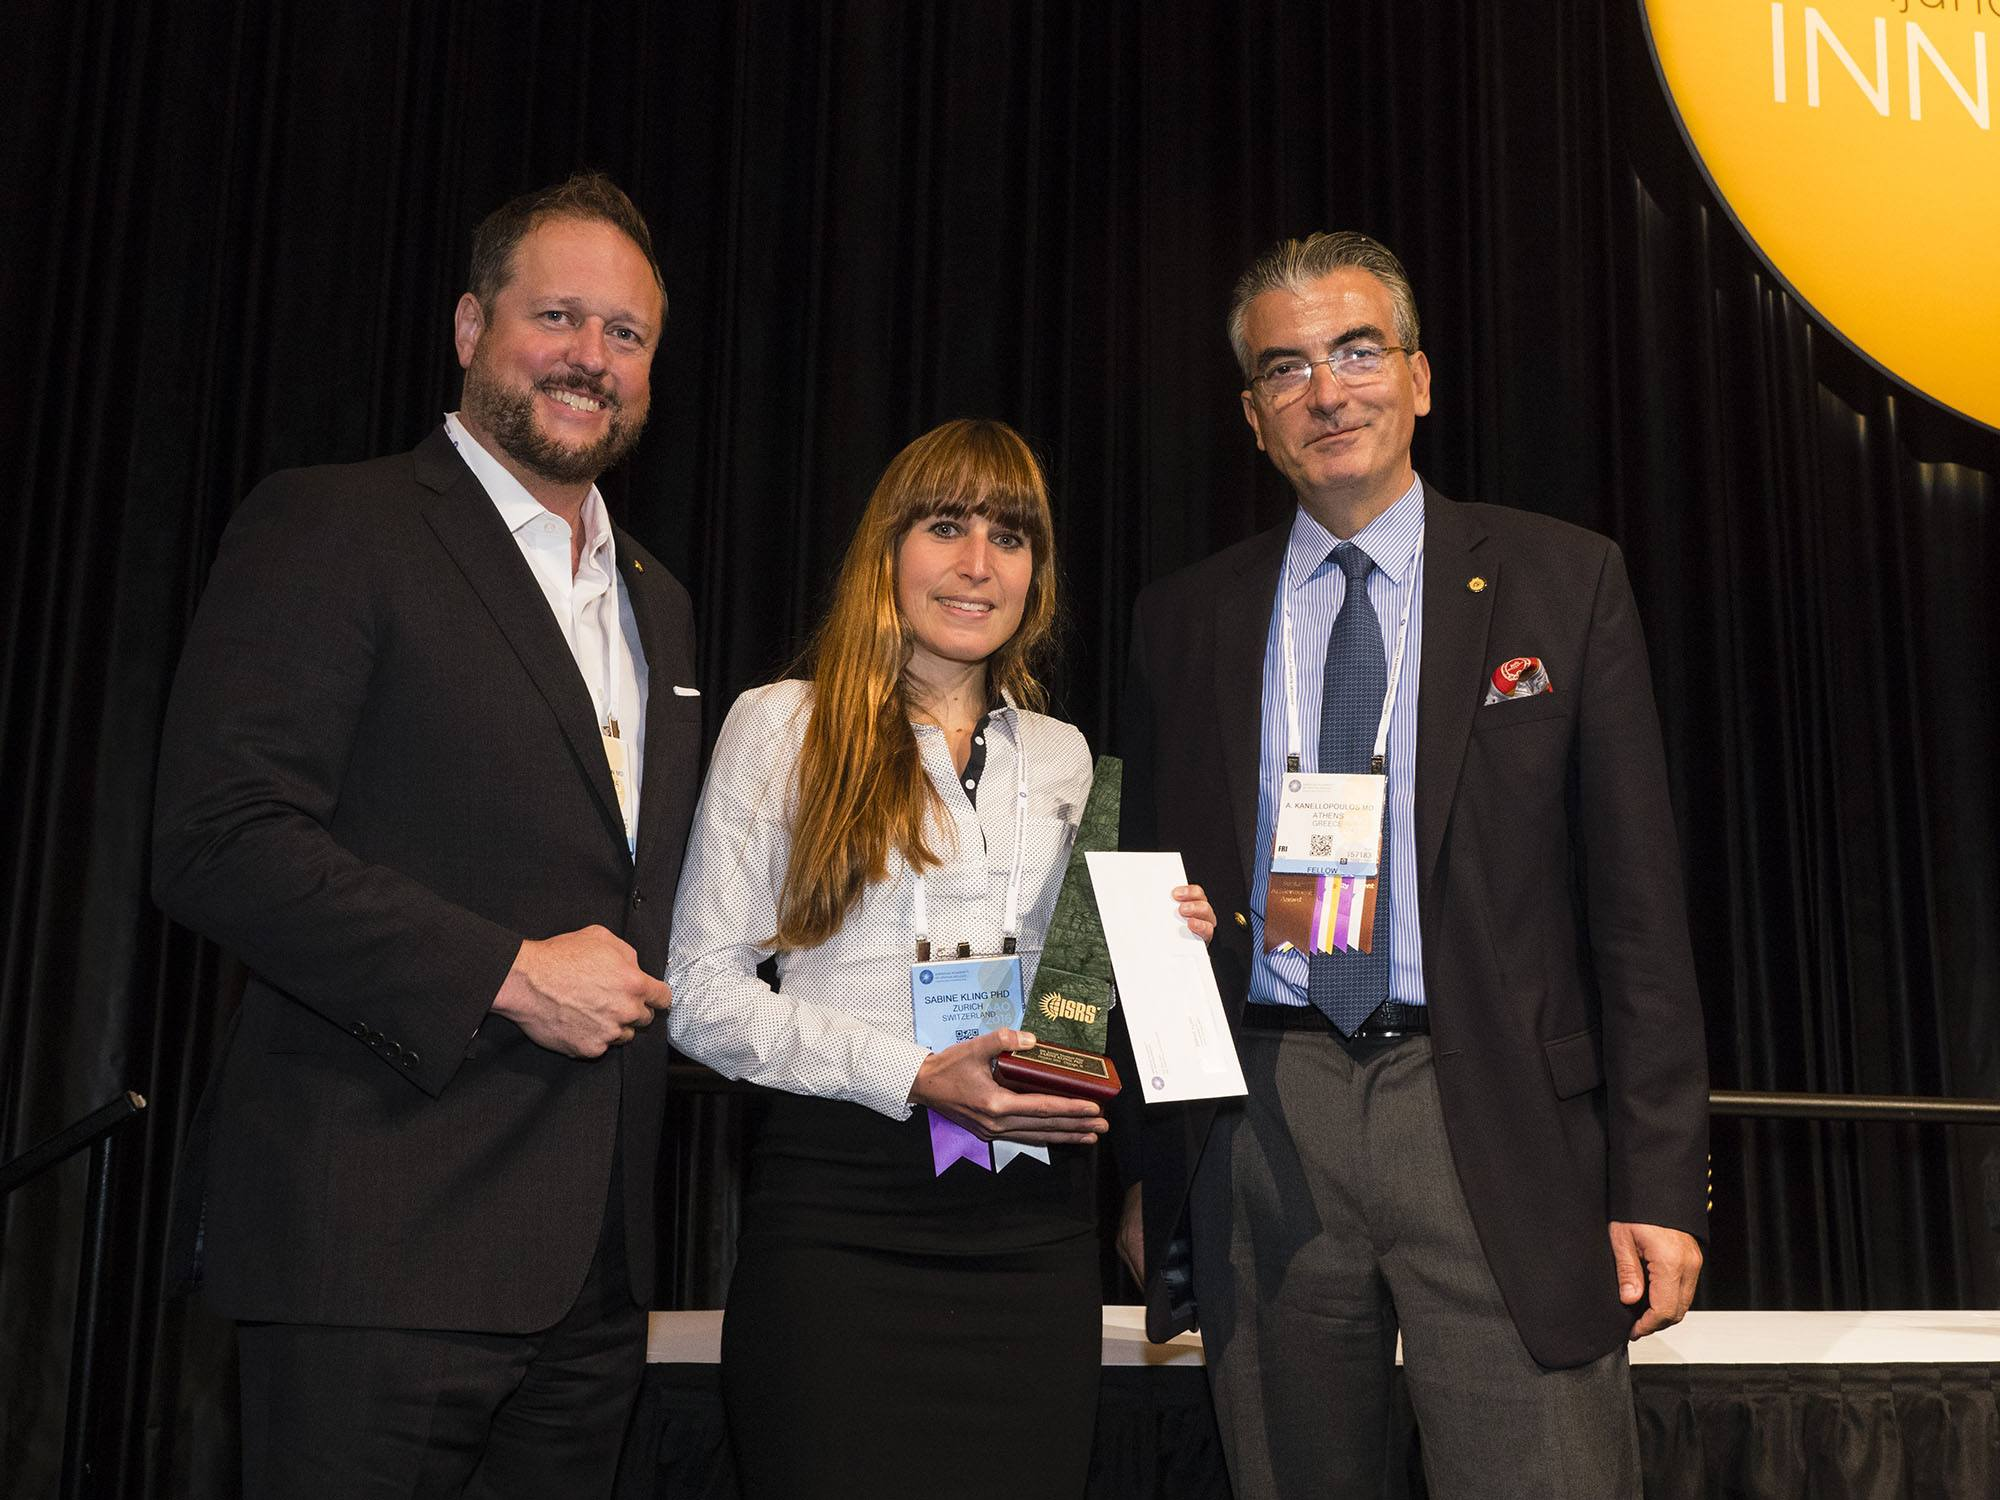 Dr. Kling receives the ISRS Troutman Award, with Prof. Kanellopoulos and Prof. Randleman